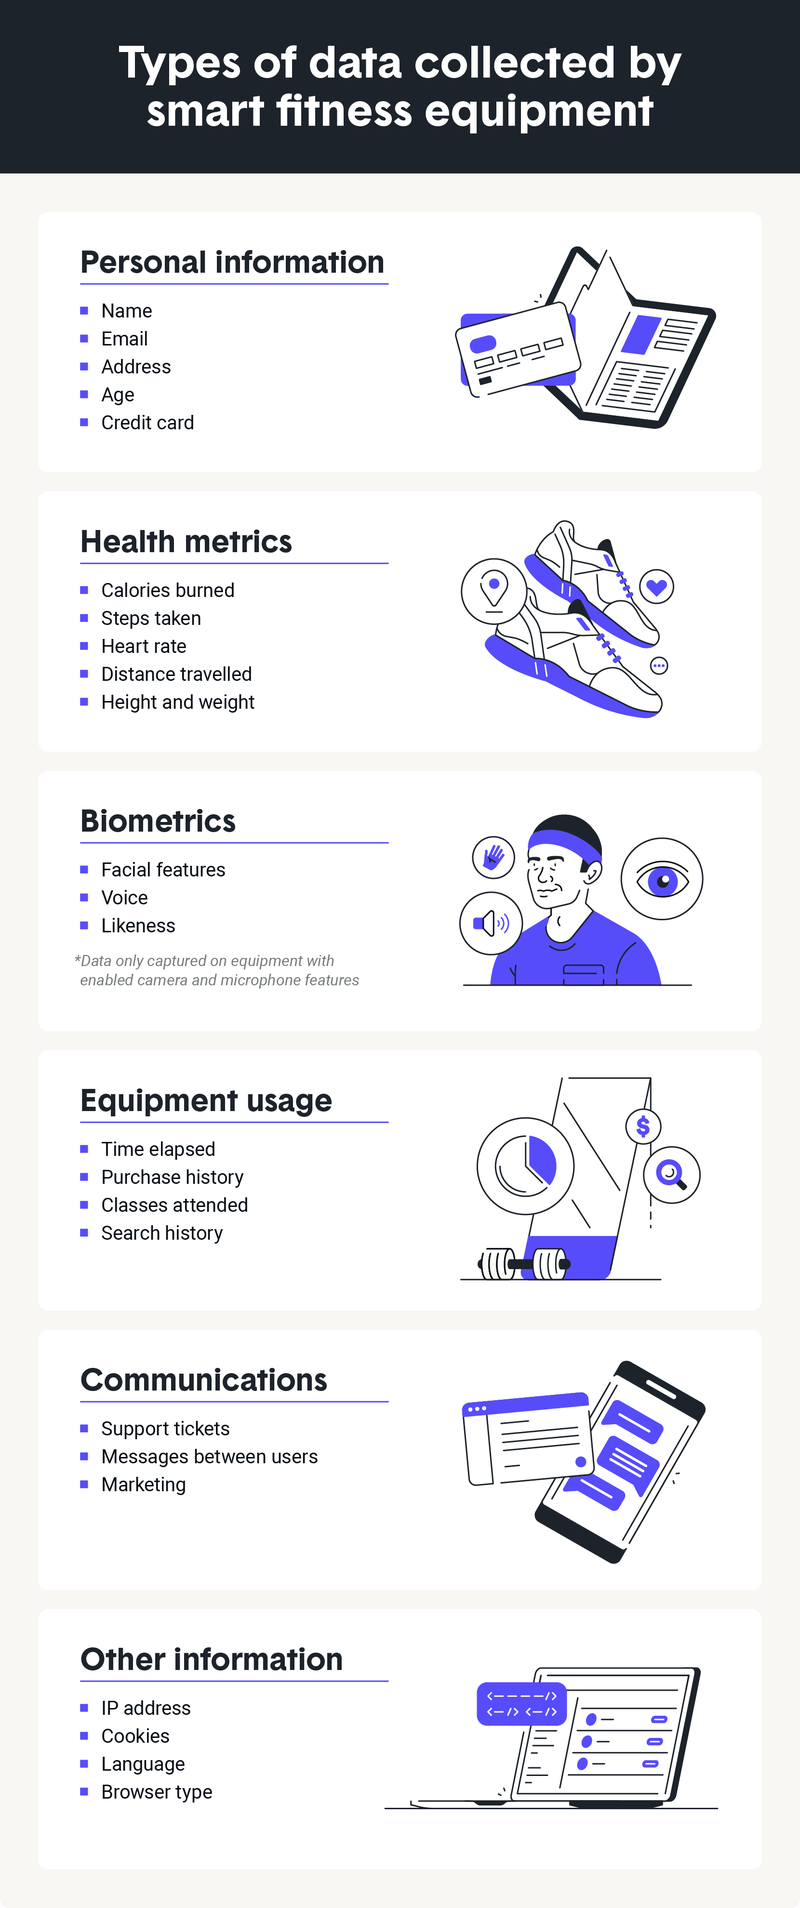 types-of-data-collected-by-smart-fitness-equipment.png